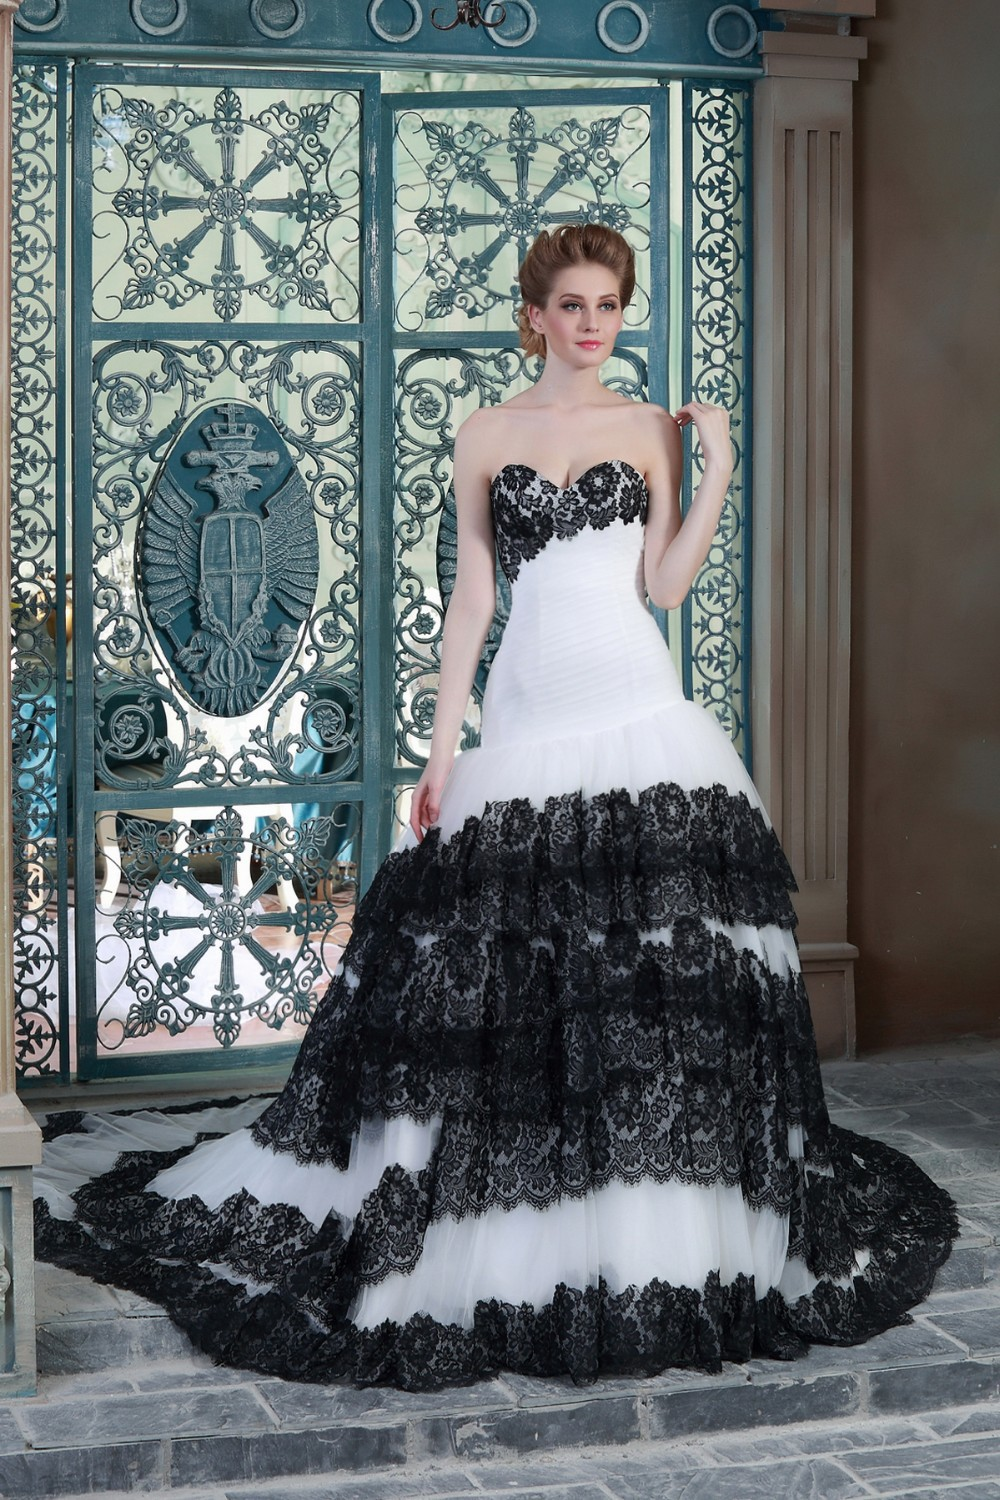 Black And White Mermaid Wedding Gowns : Gothic black and white mermaid wedding dresses s non